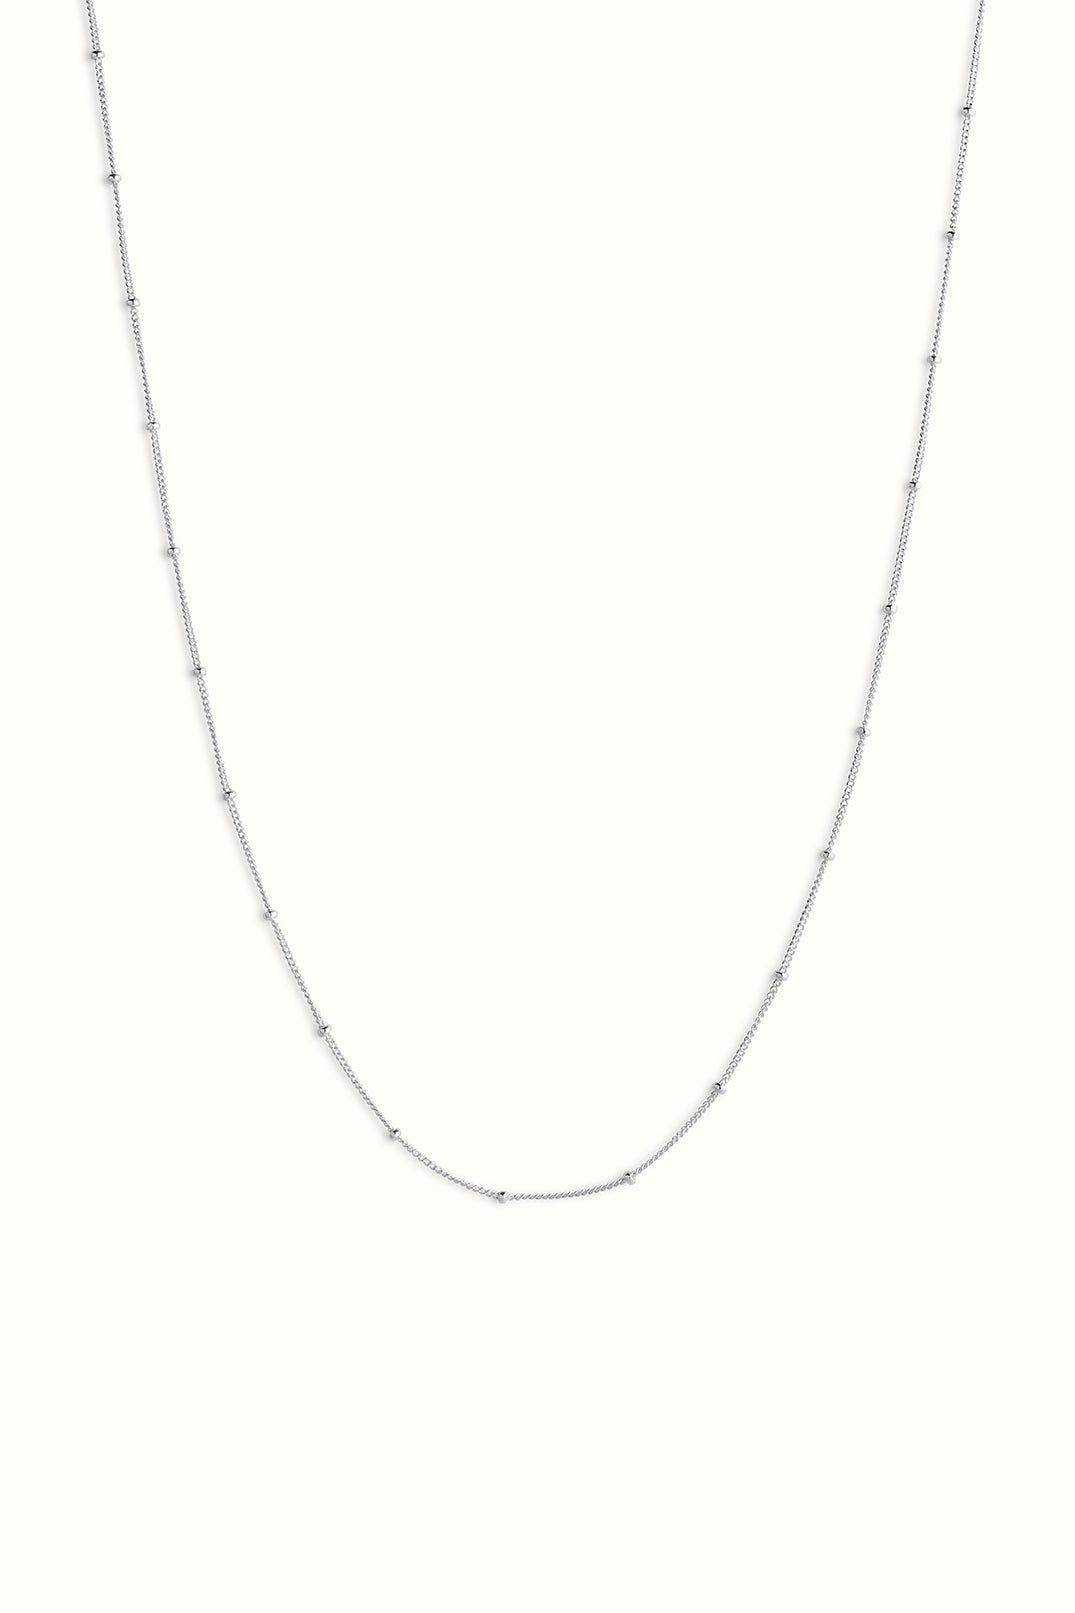 sterling silver saturn chain necklace on a white background